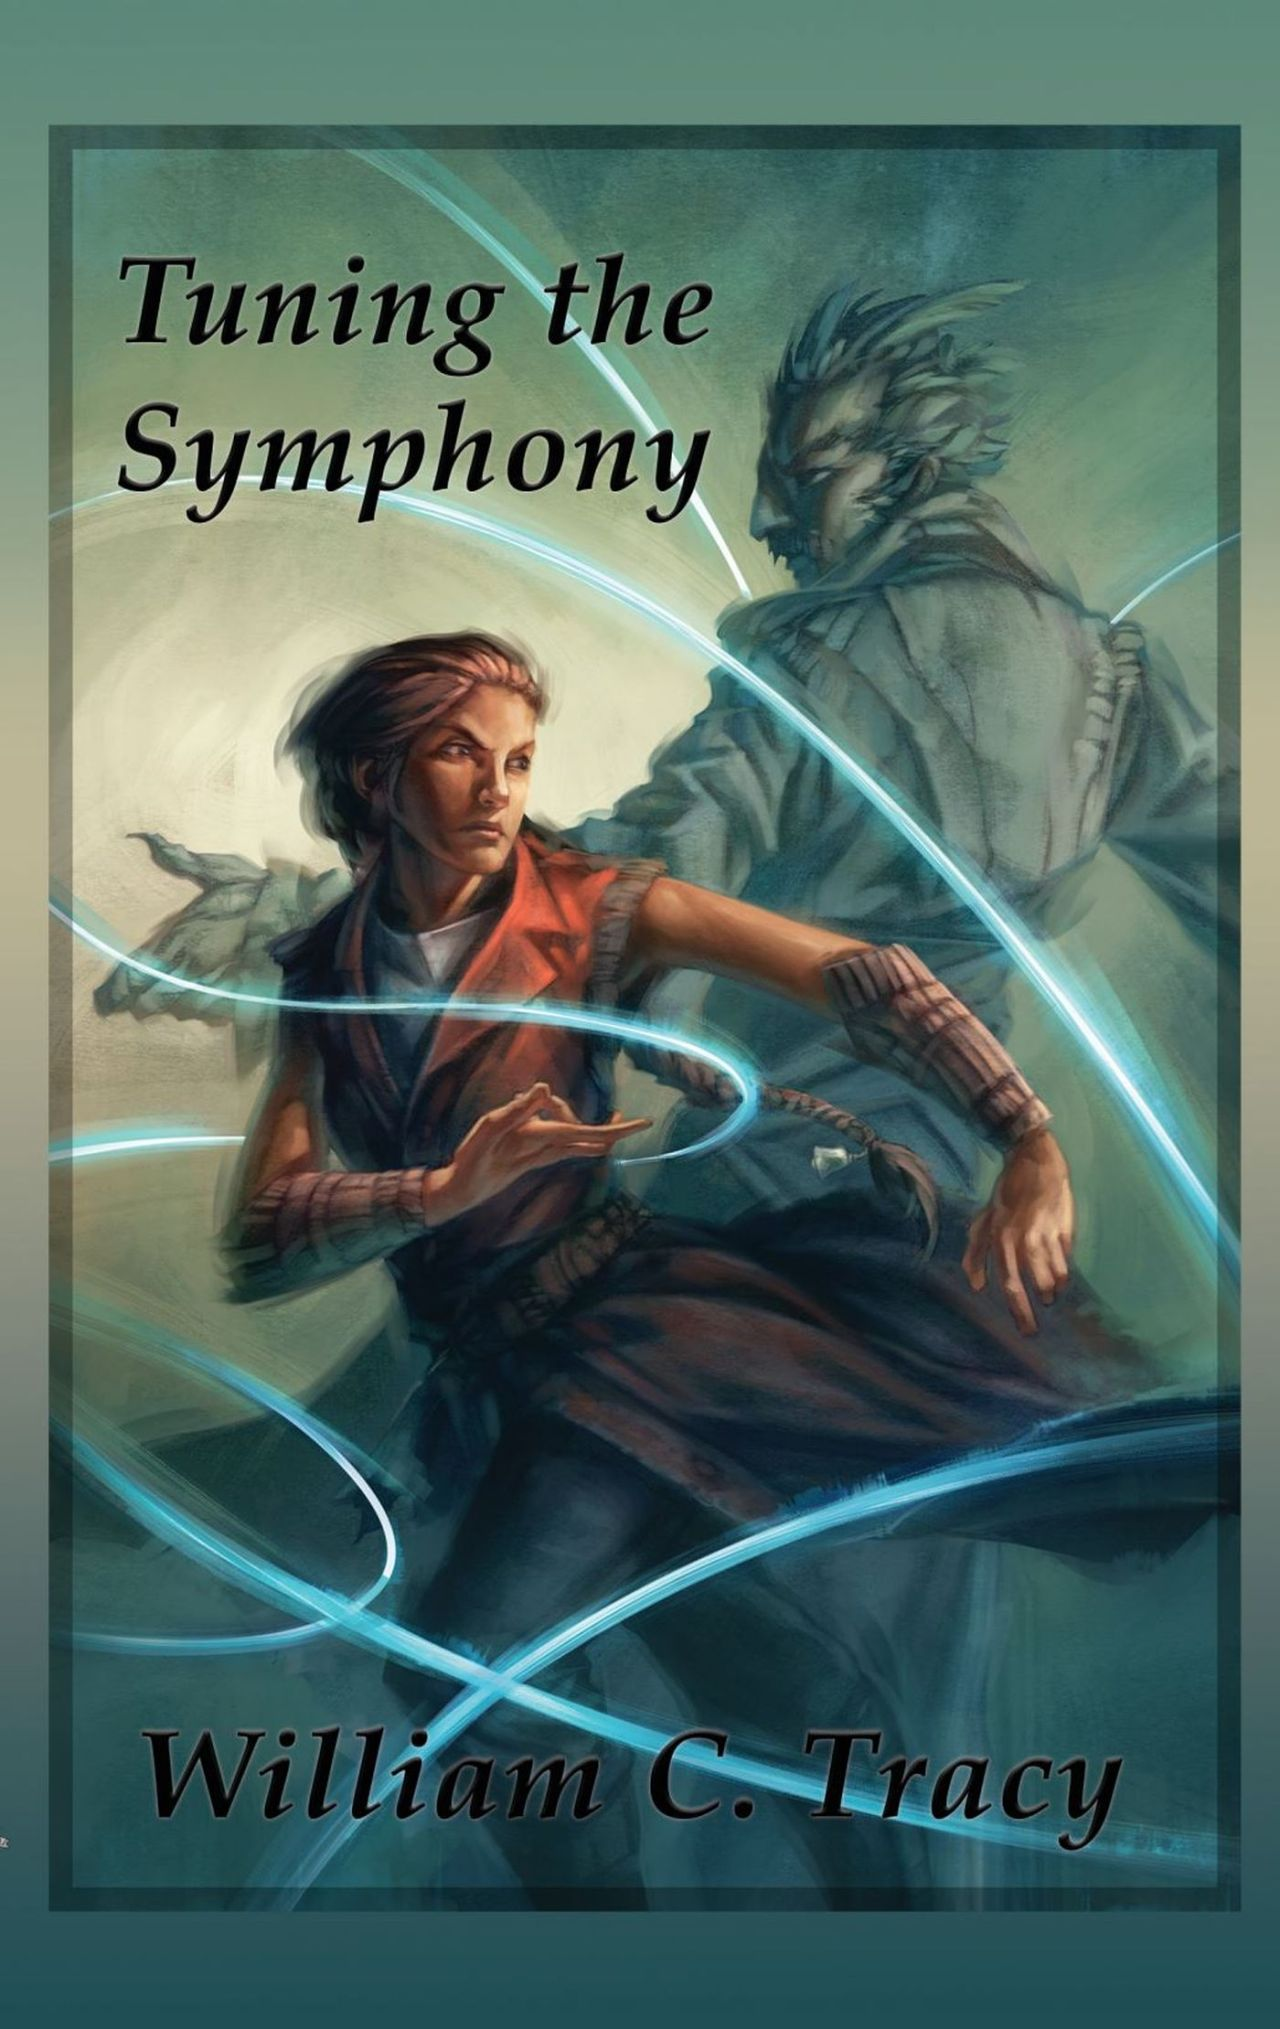 Tuning the Symphony cover